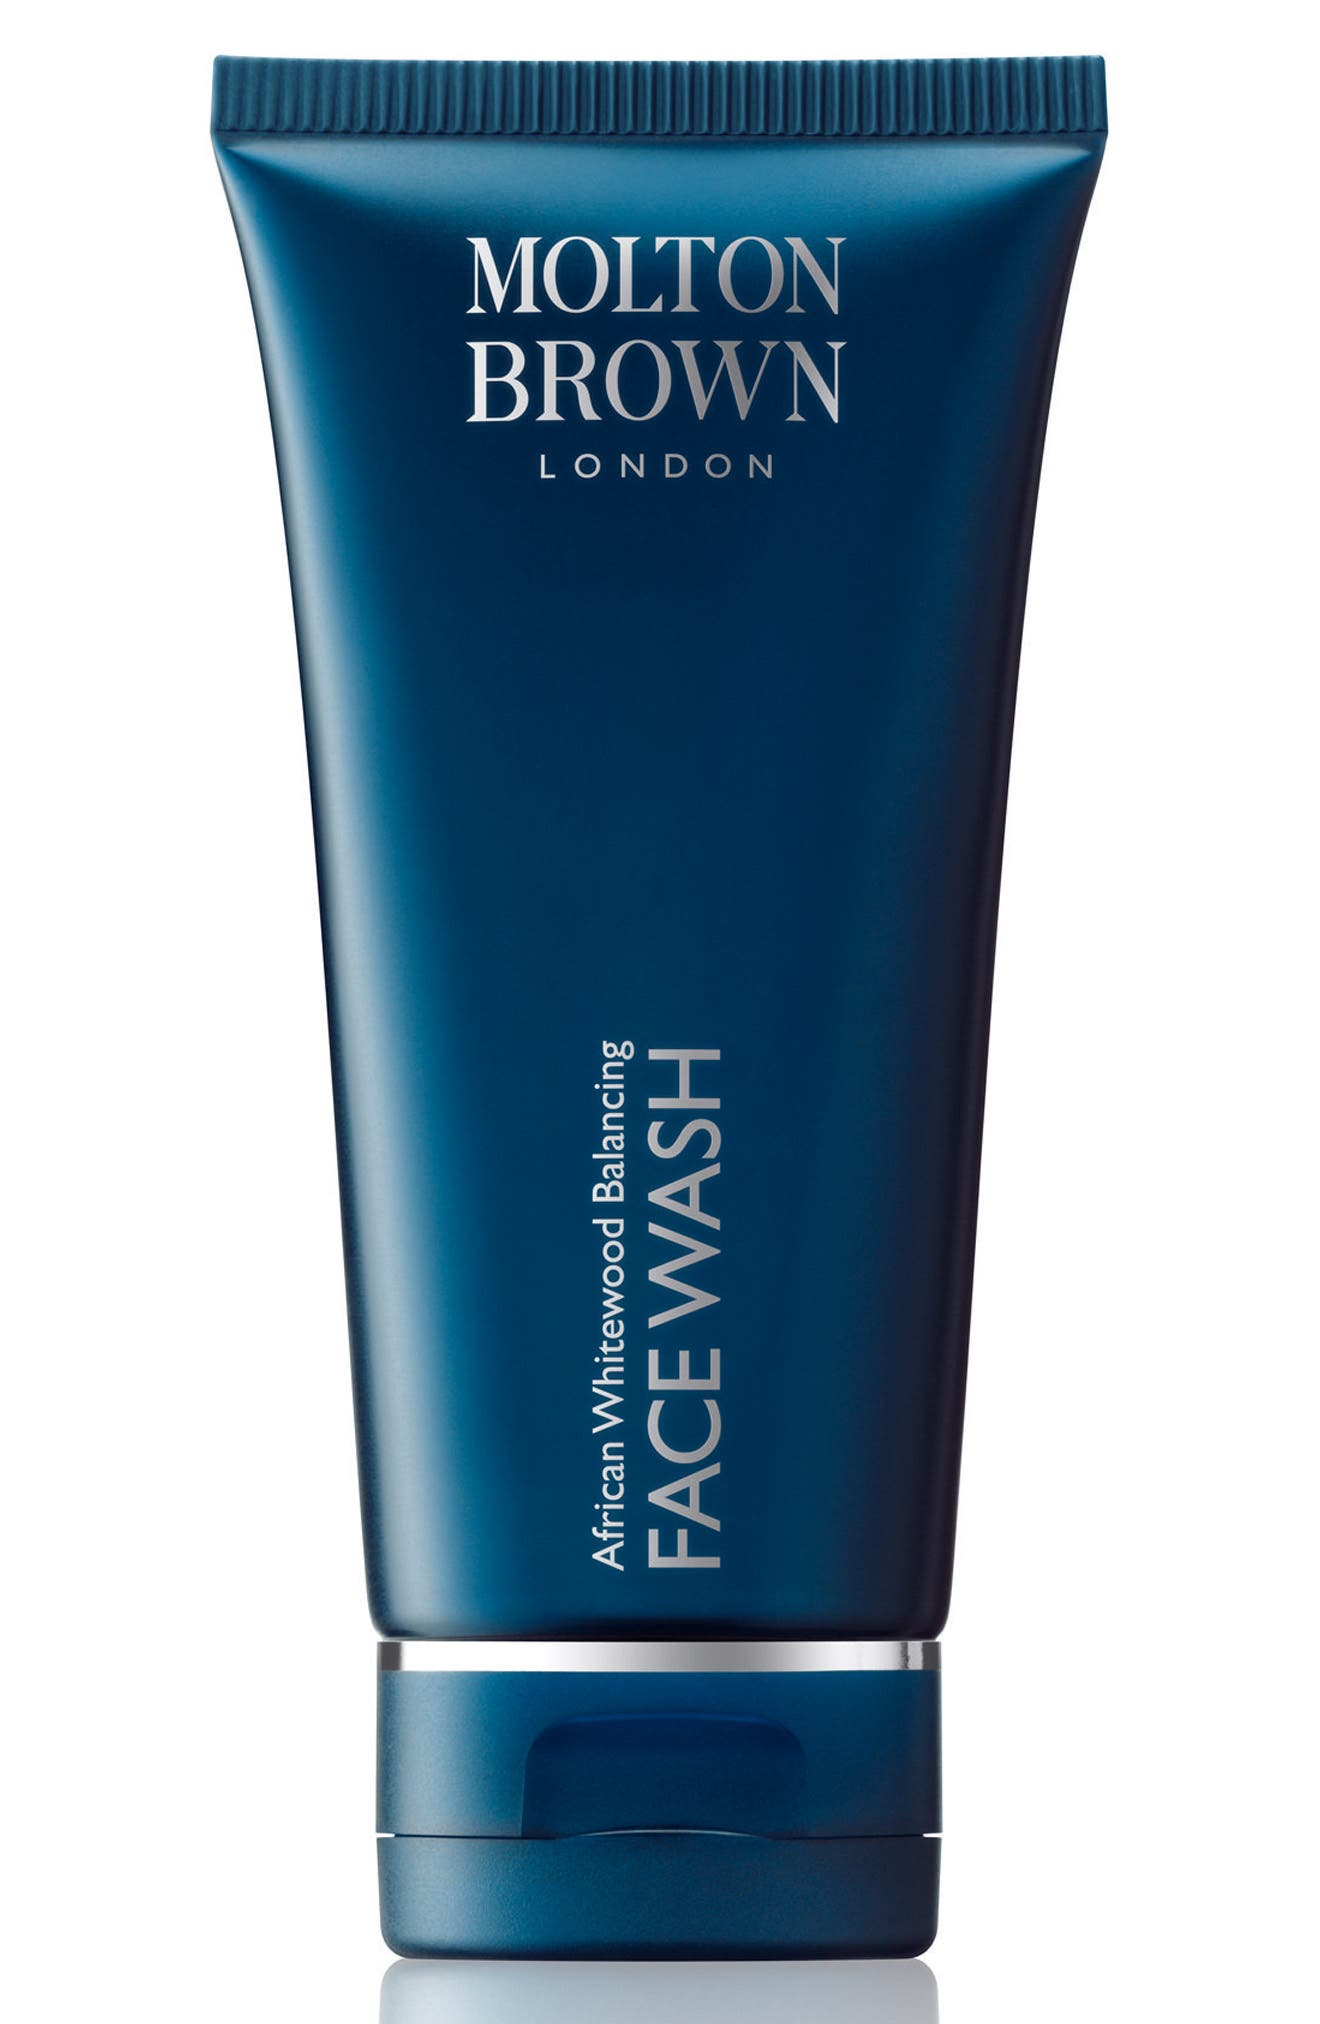 MOLTON BROWN London Balancing Face Wash